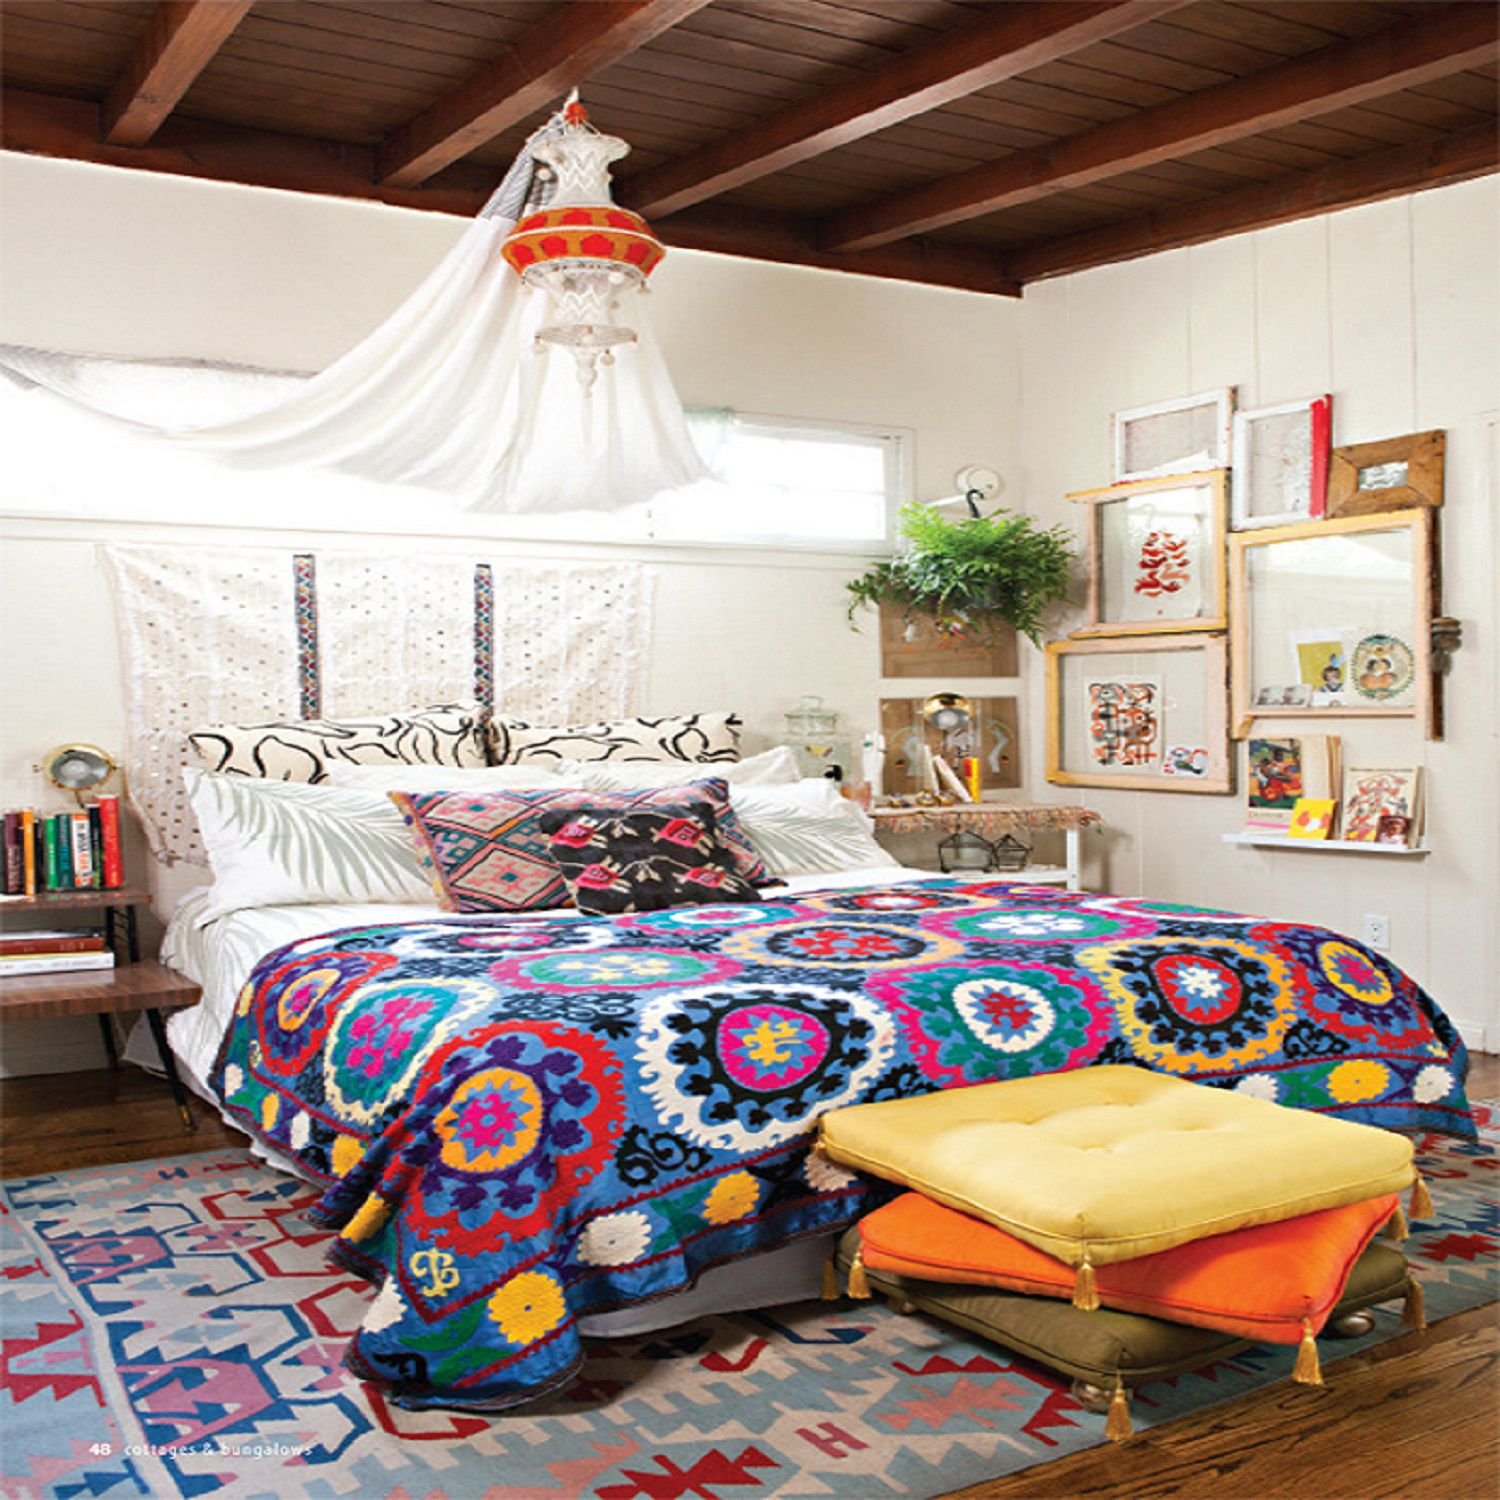 25 Bedroom Design Ideas For Your Home: Beautiful Boho Bedroom Decorating Ideas And Photos